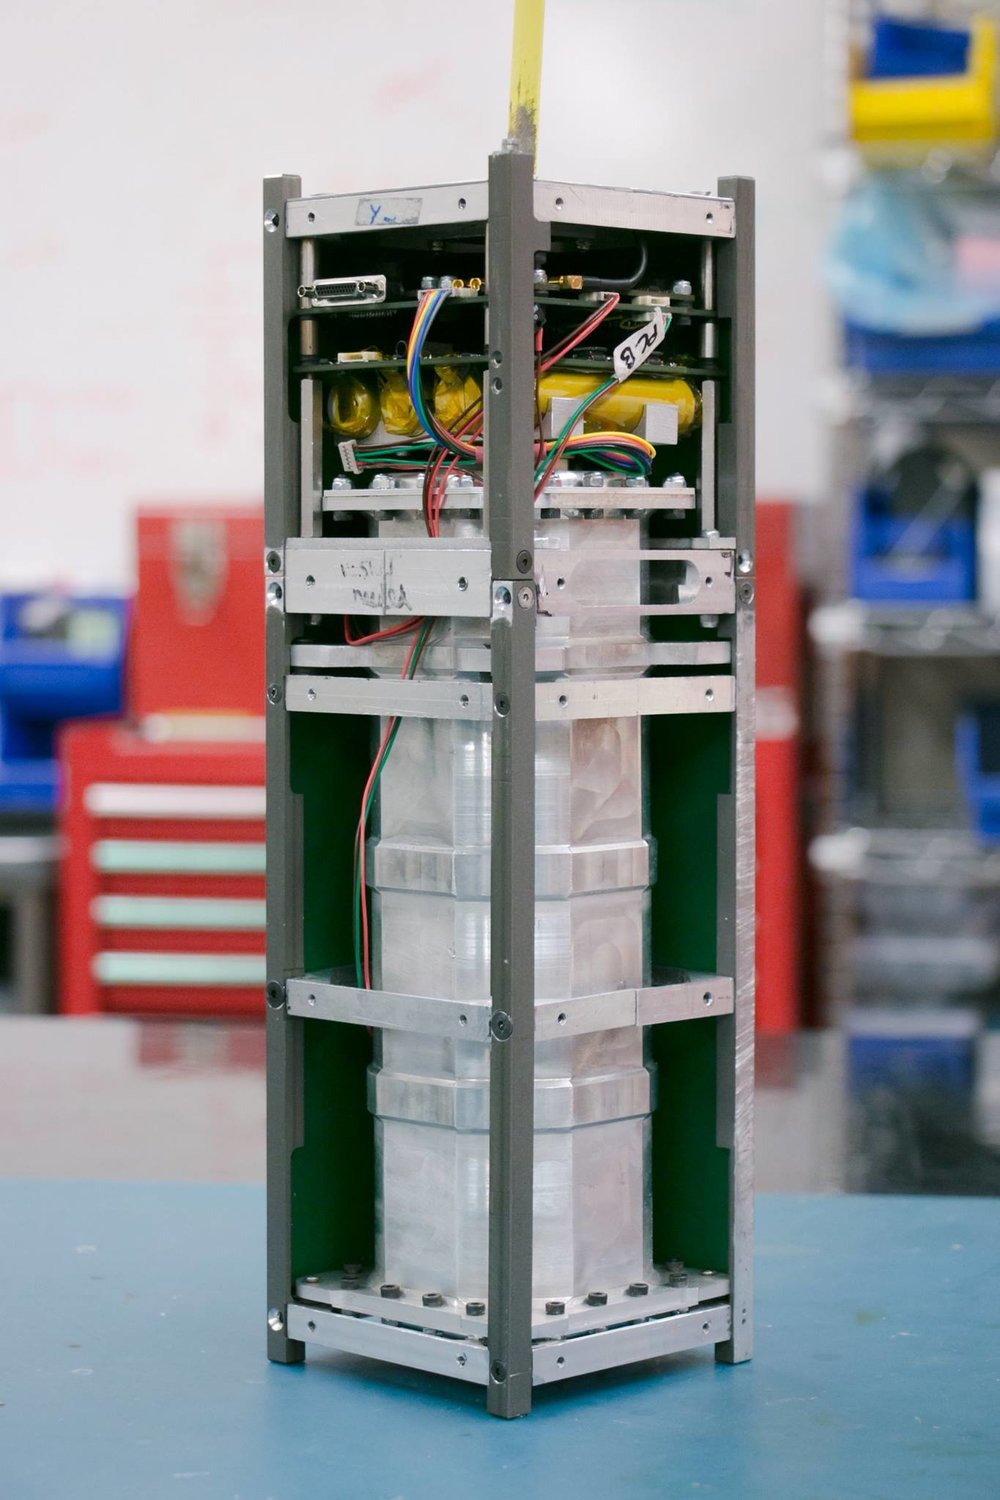 The  HERON MK I  cubesat with its protective cowling removed.